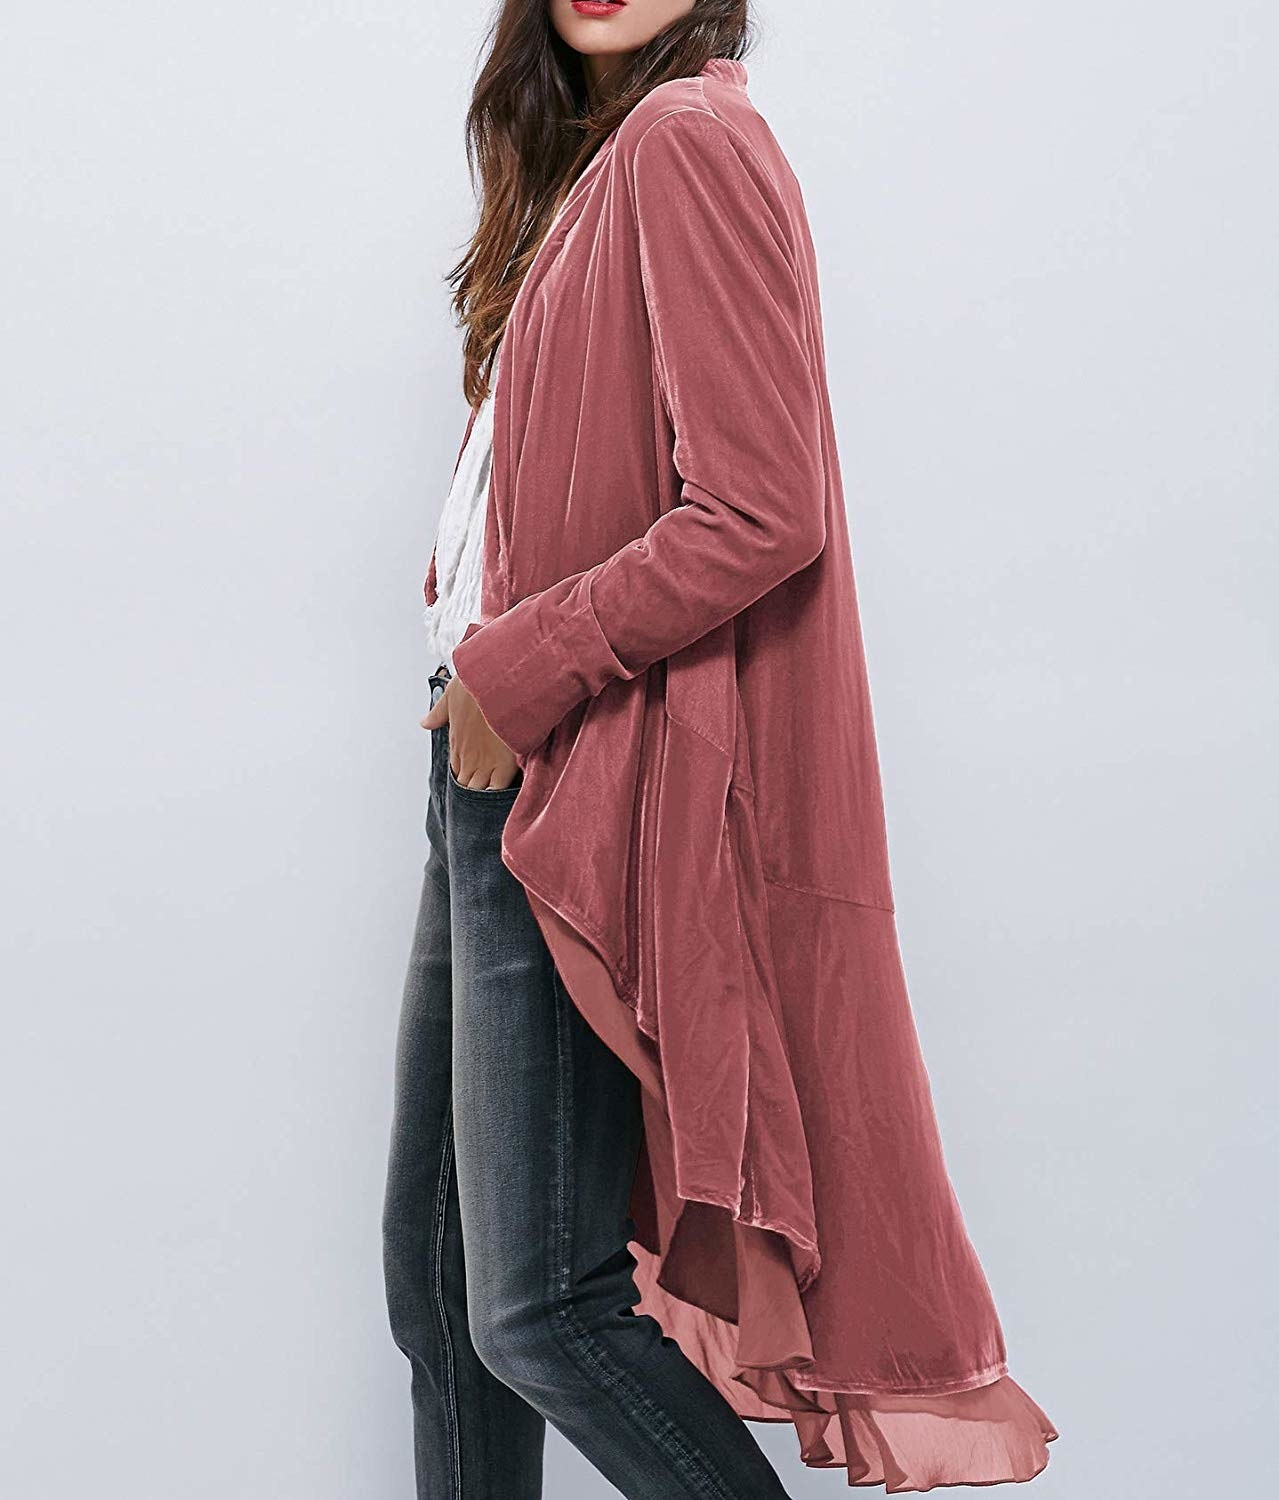 A model in the dusty pink high-low jacket